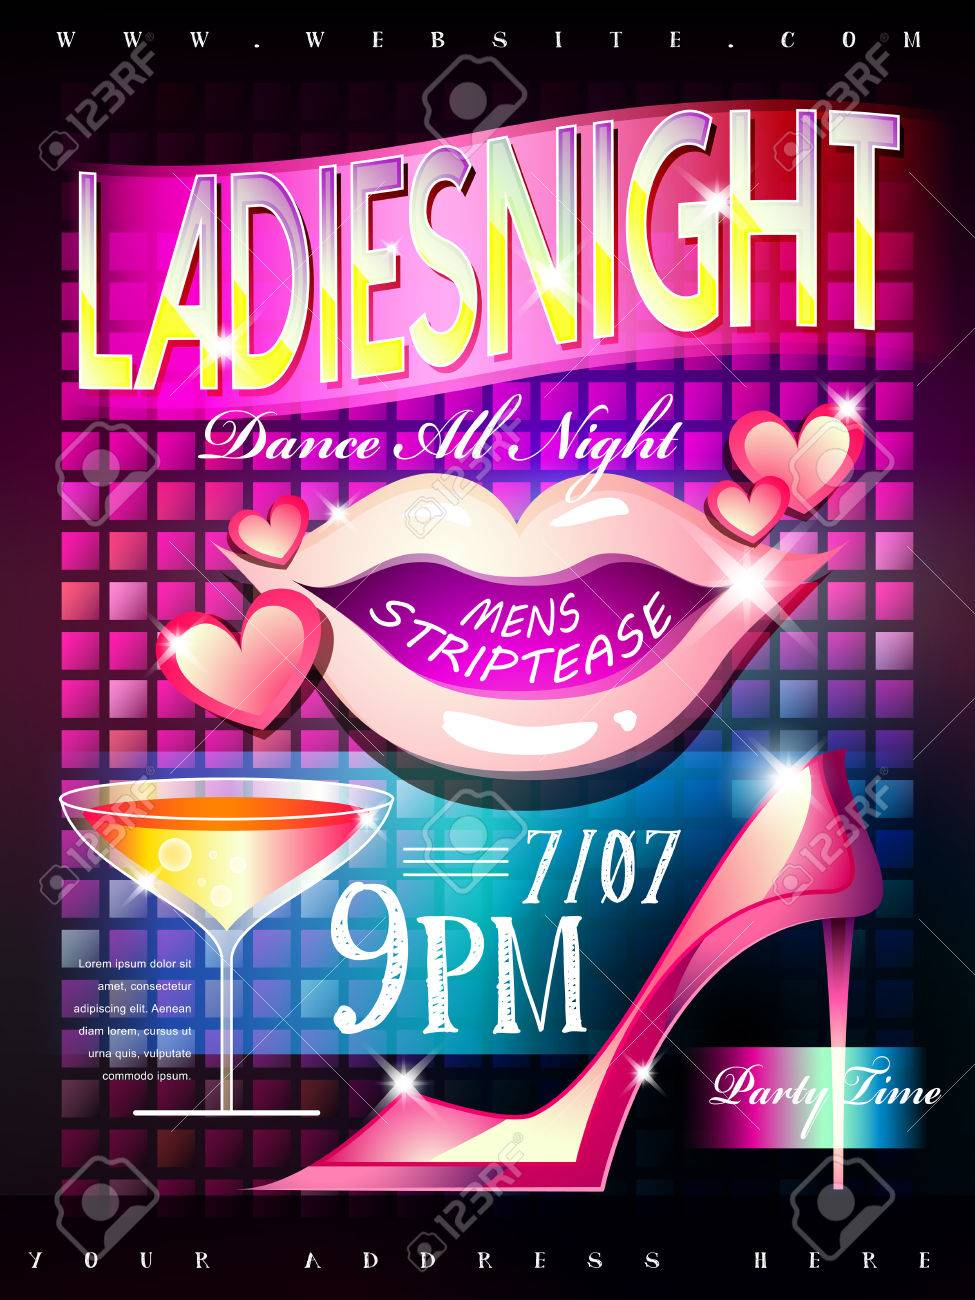 coloful neon style ladies night poster template